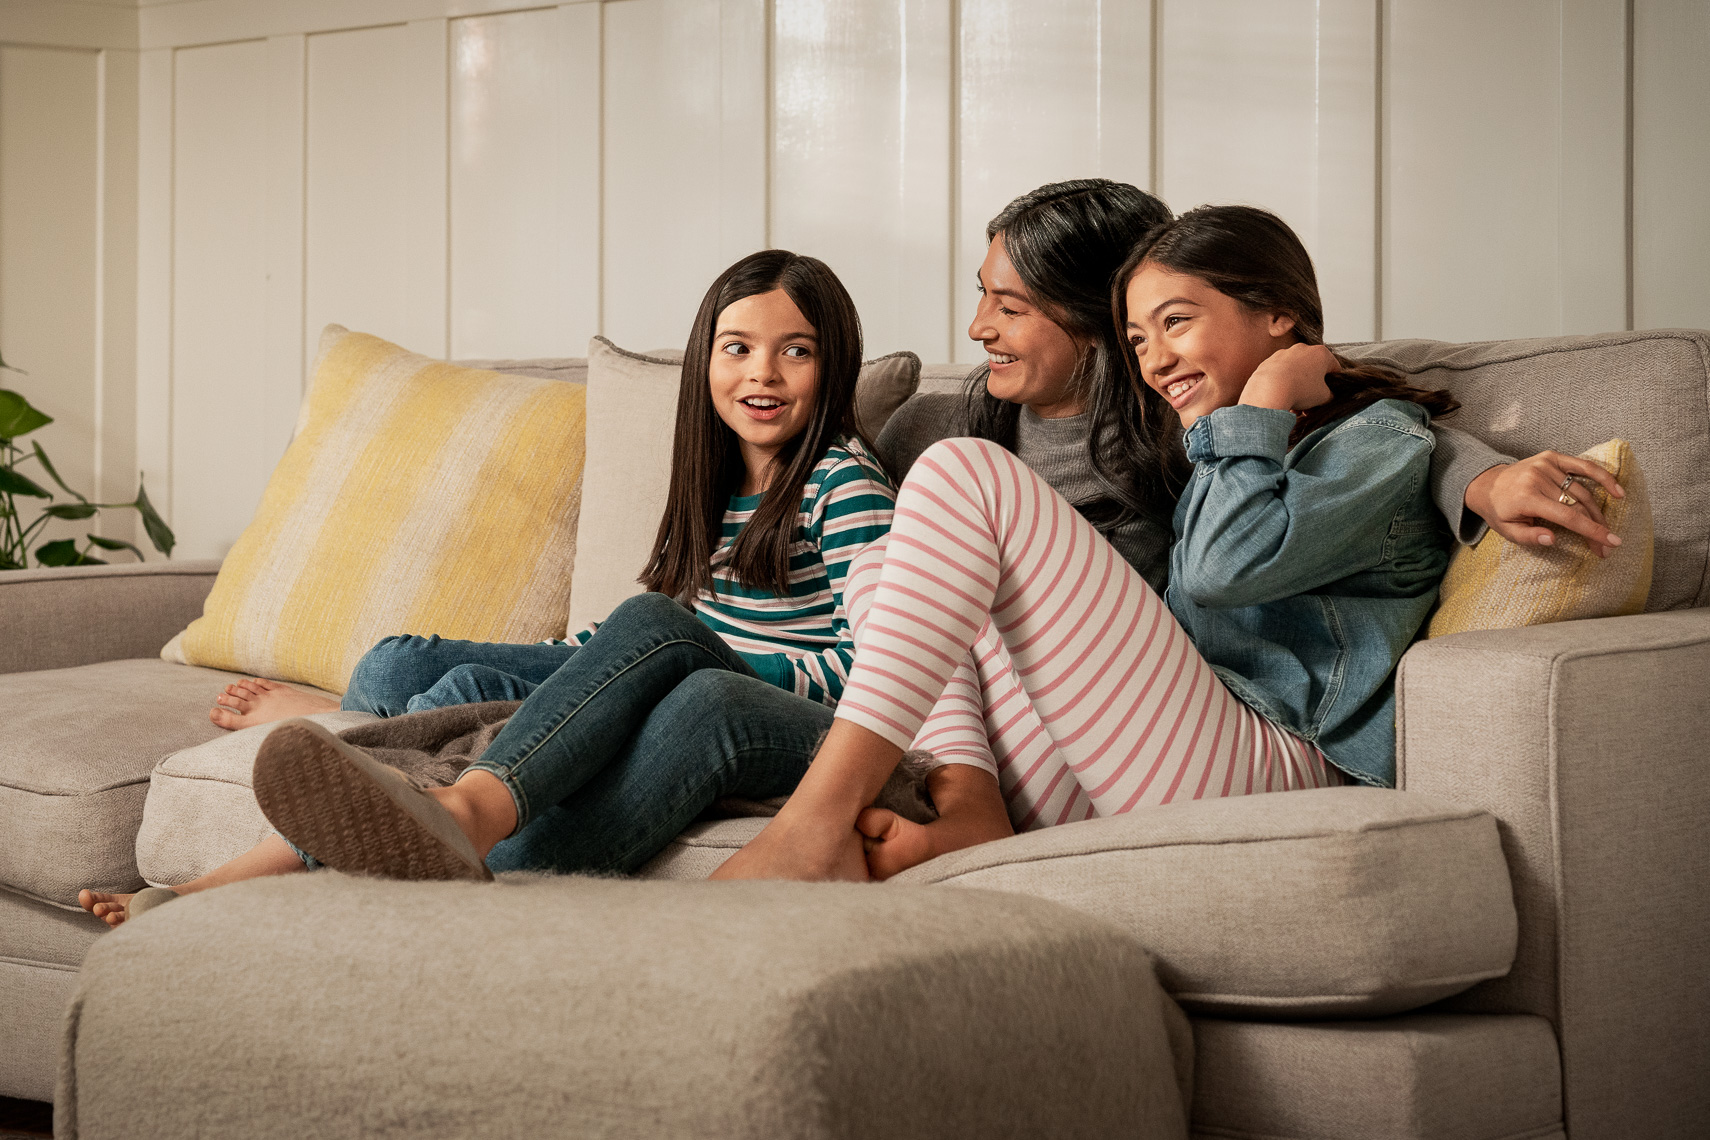 mother_and_daughters_sofa_0051_OG_V10-2020V1